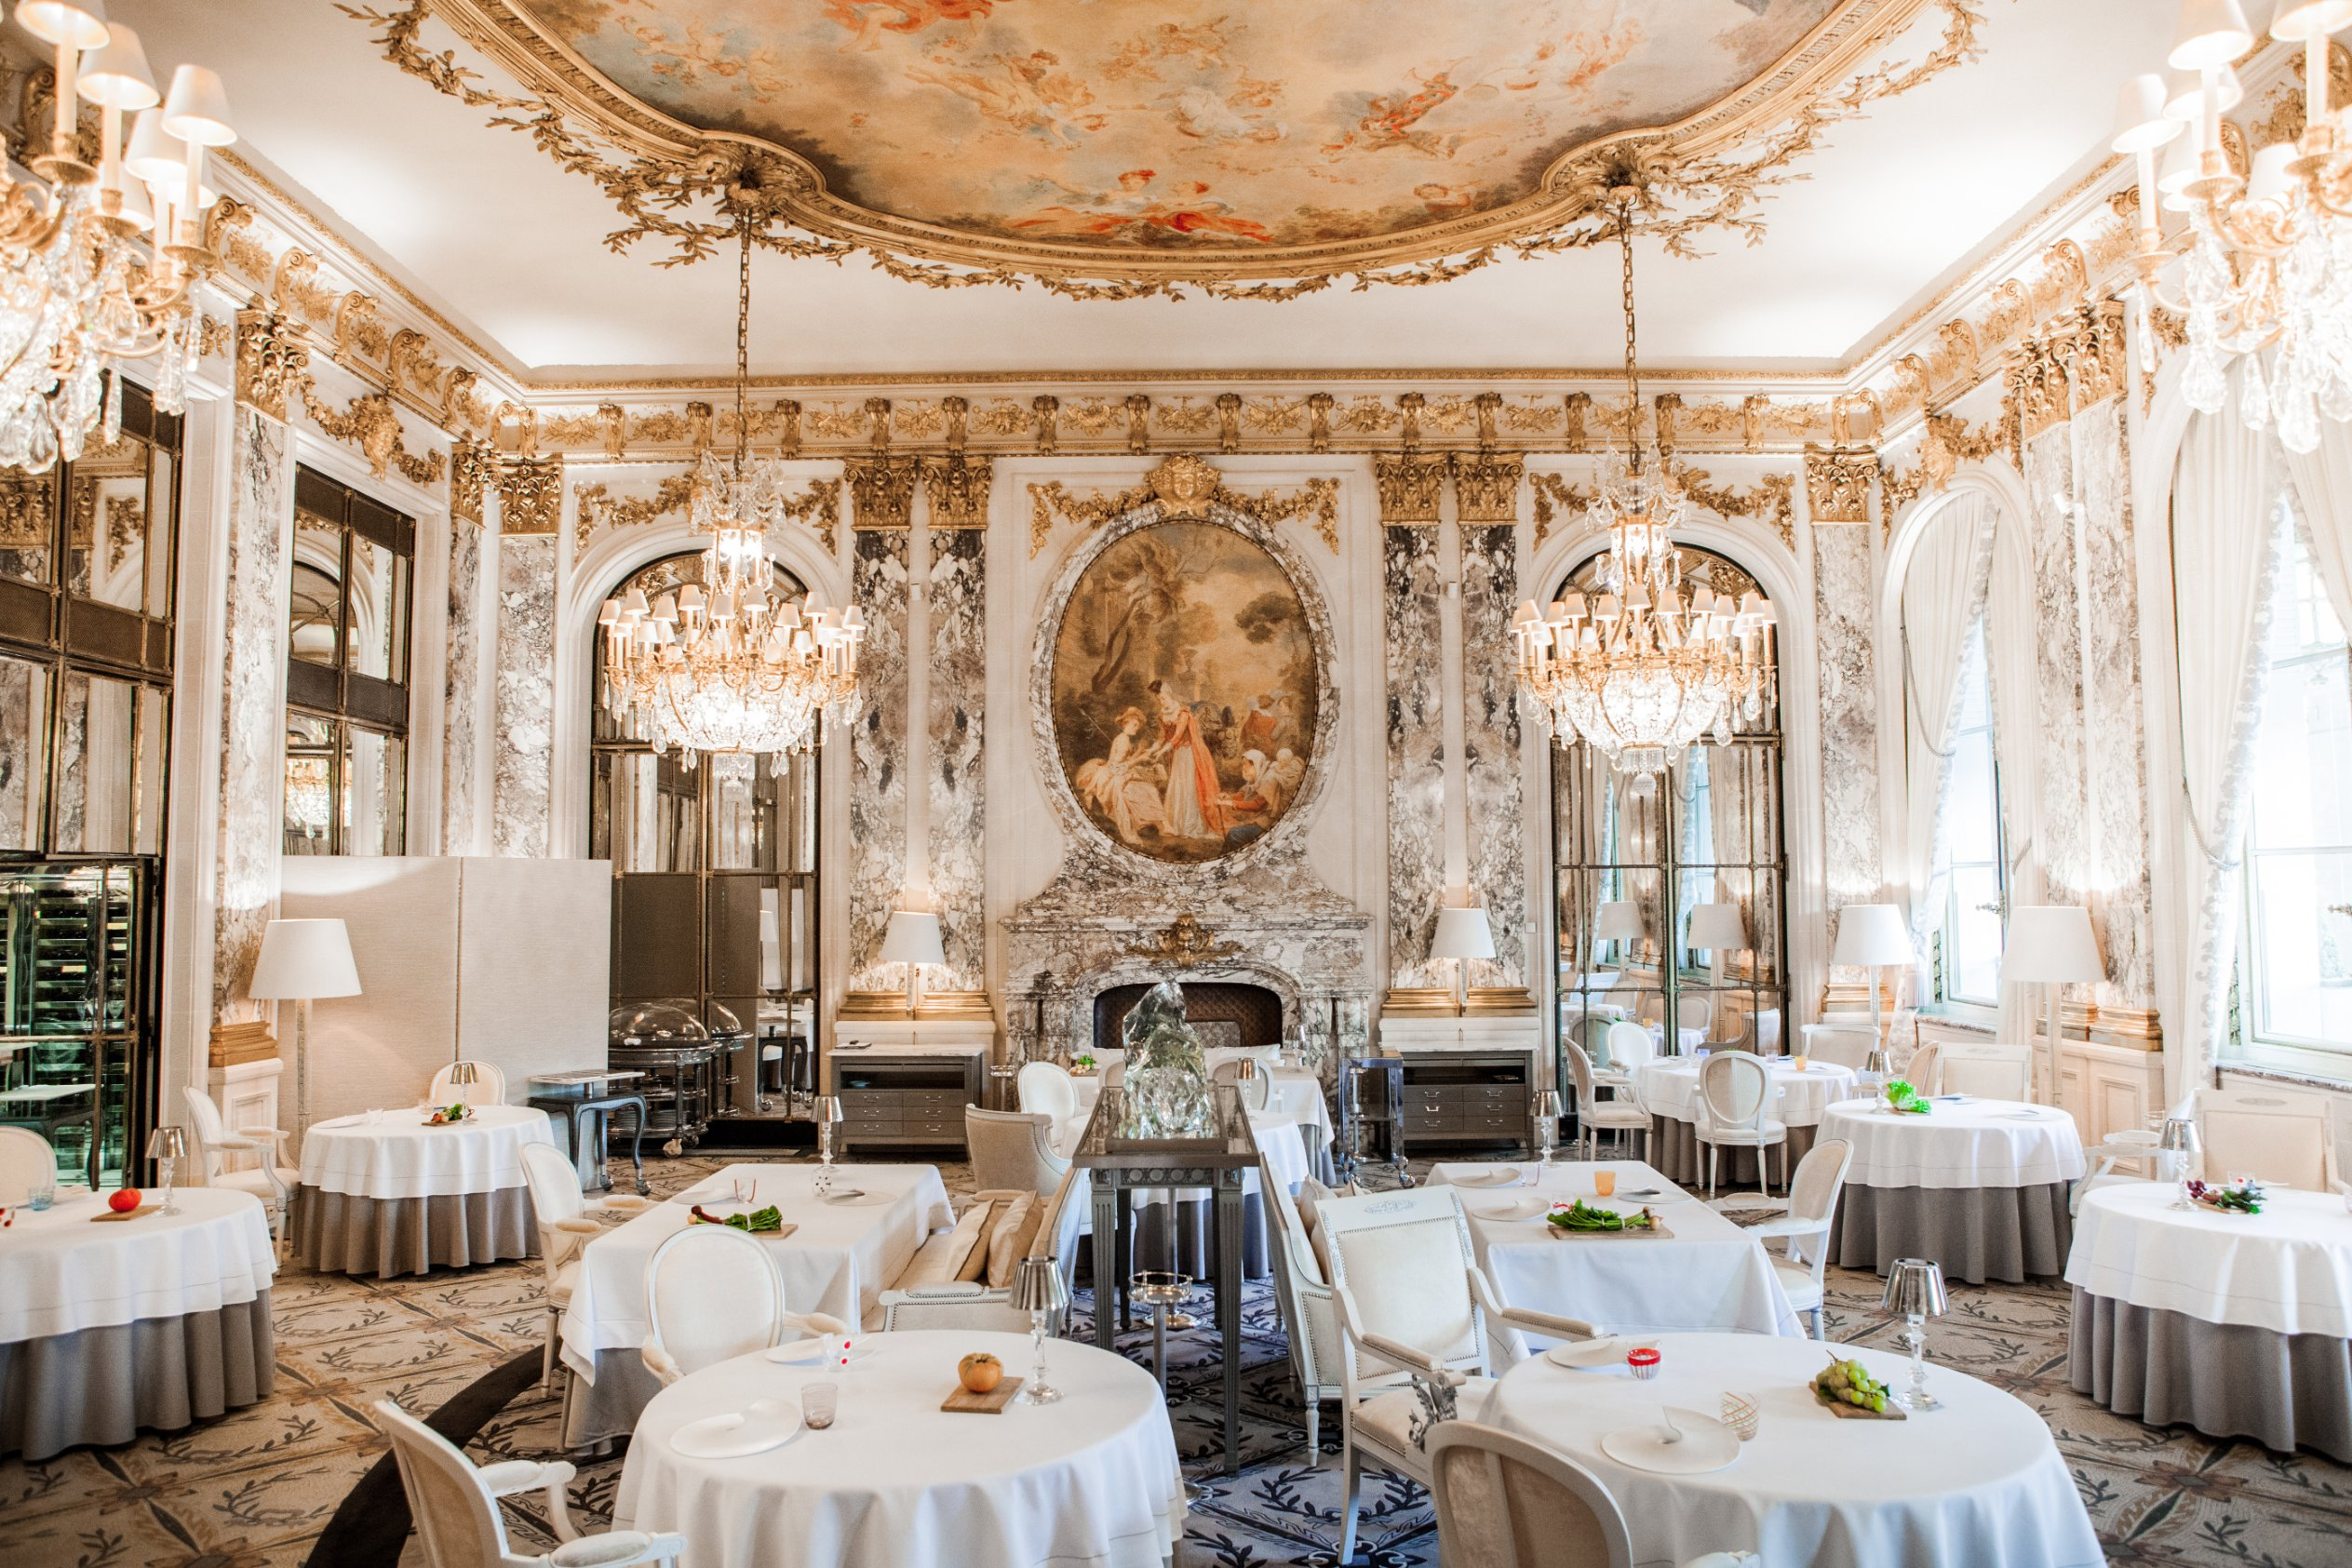 10 of europe's most expensive restaurants | cnn travel